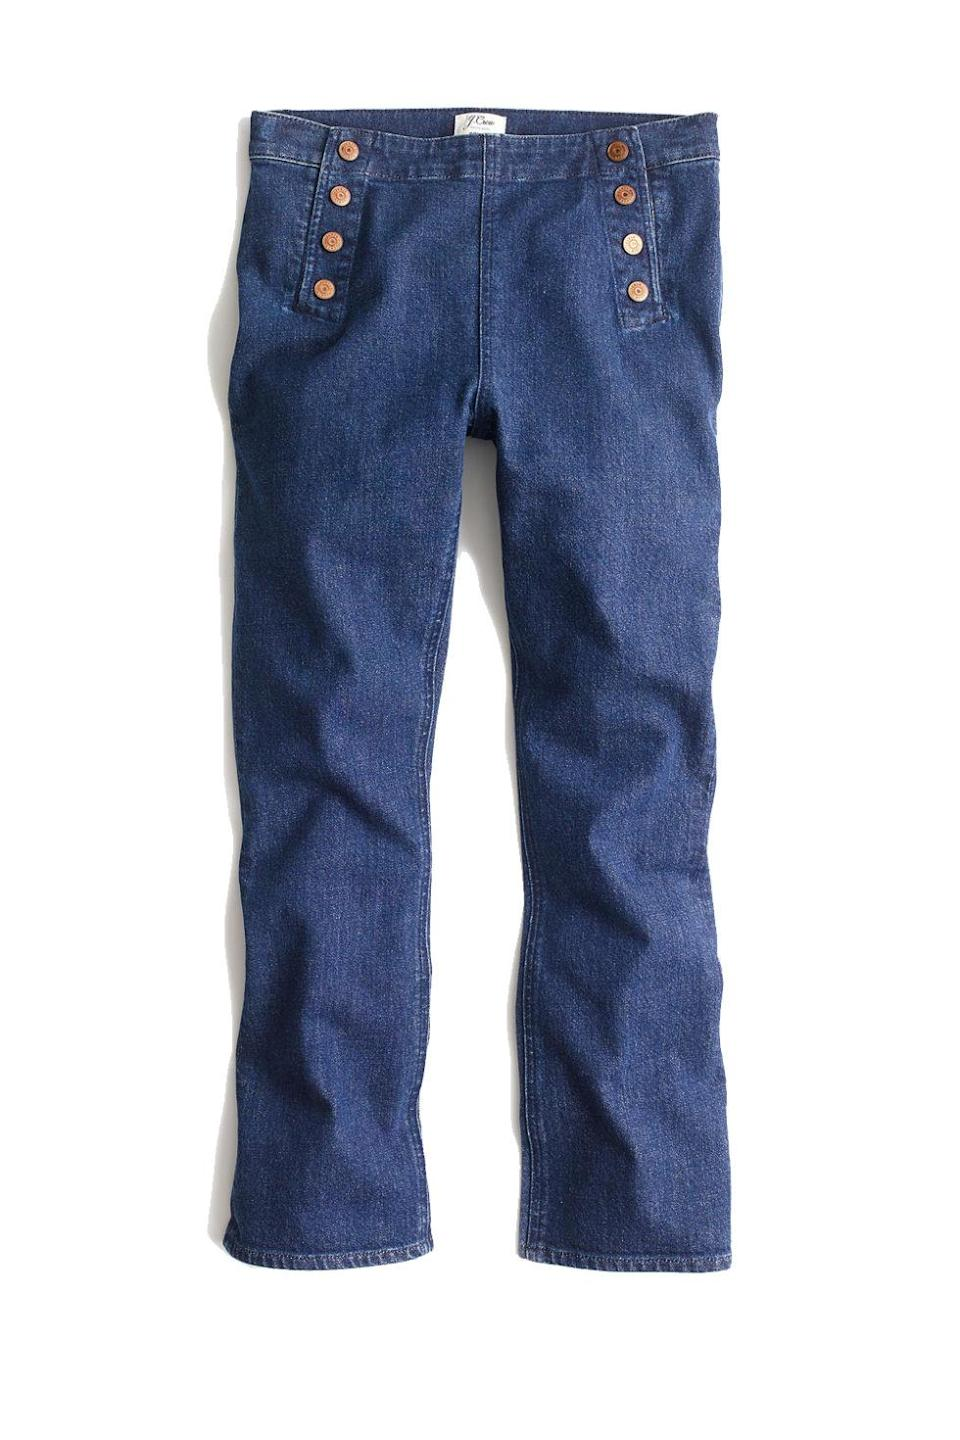 """<p>Sailor-inspired trousers to go with your Breton shirt and brimmed hat, you seafaring wannabe. </p><p><strong>BUY IT:</strong> J.Crew, $60; <a href=""""https://www.jcrew.com/p/G2320"""" rel=""""nofollow noopener"""" target=""""_blank"""" data-ylk=""""slk:jcrew.com"""" class=""""link rapid-noclick-resp"""">jcrew.com</a>.</p>"""